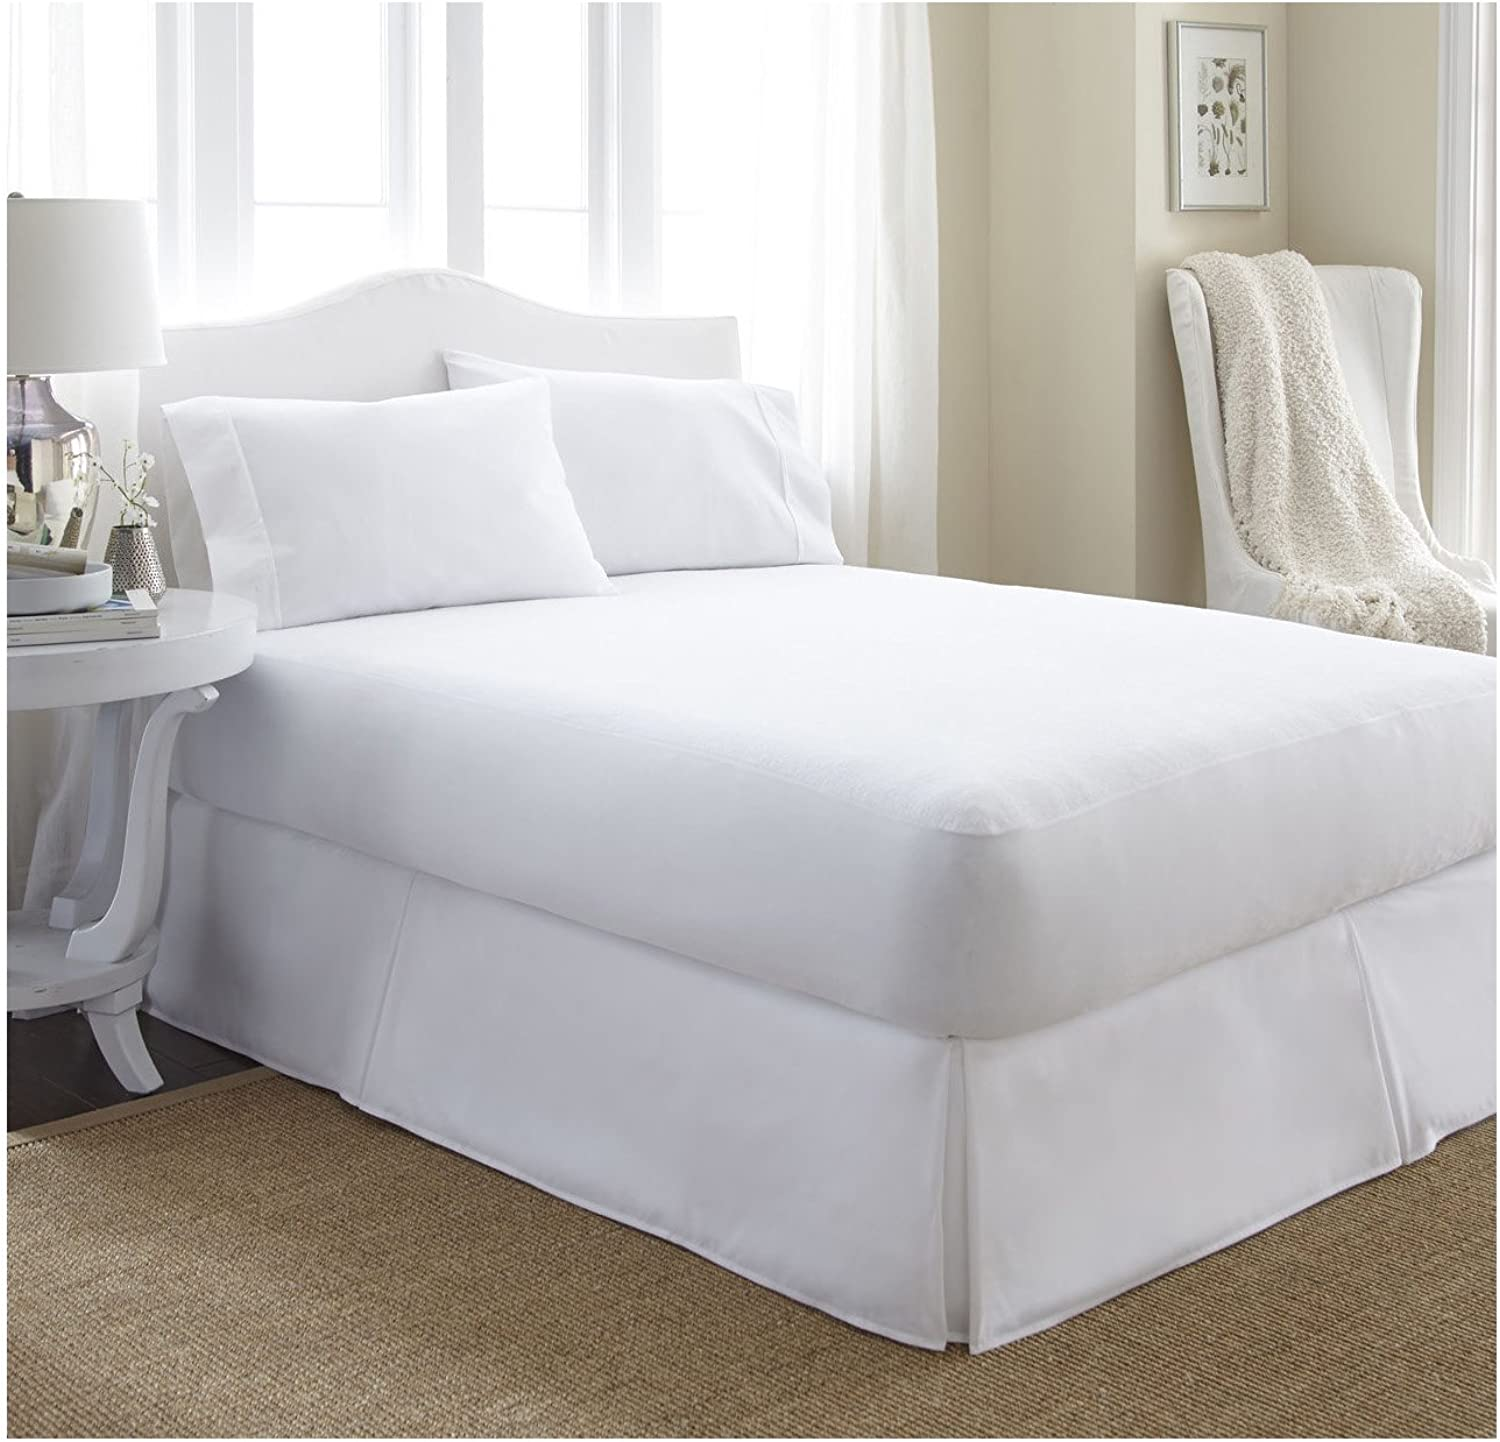 Ienjoy Home IEH-MATTRESSPred-CALKING Home Collection Premium Luxury Terry Cotton Waterproof Mattress Predector, California King, White